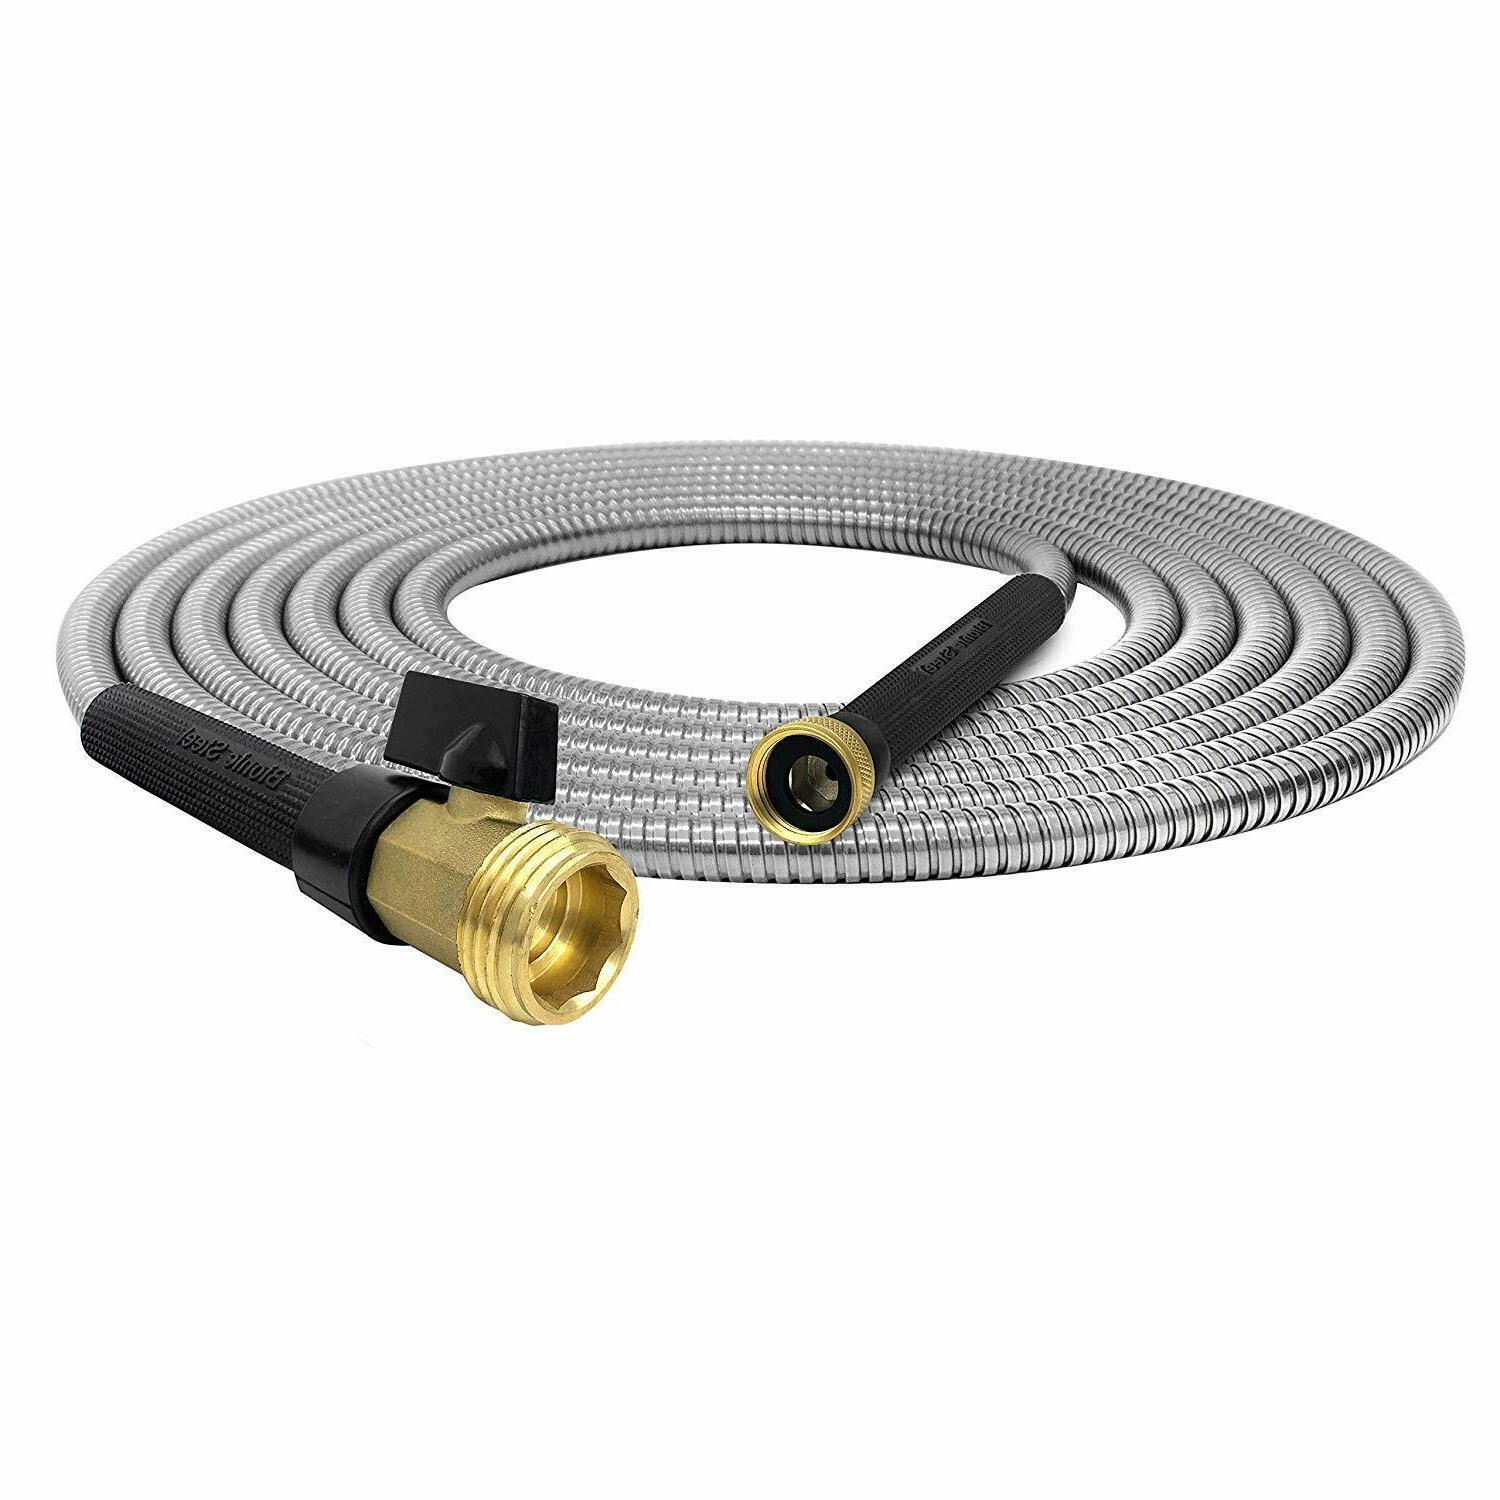 BIONIC Metal Garden Hose 2020 Model!